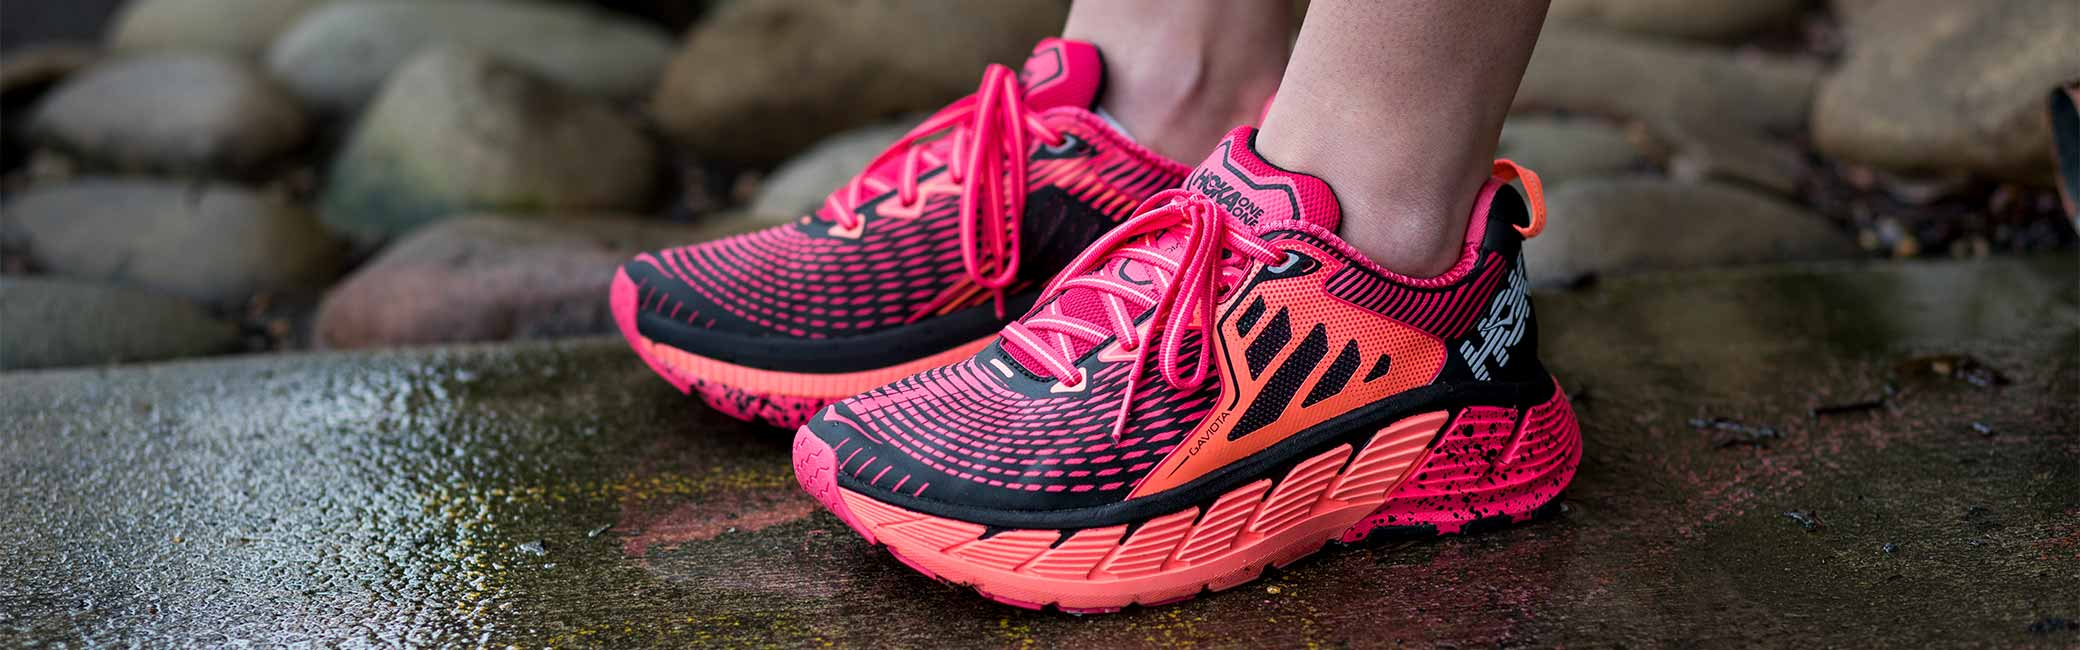 10 Best Stability Running Shoes For Men  U0026 Women In 2018